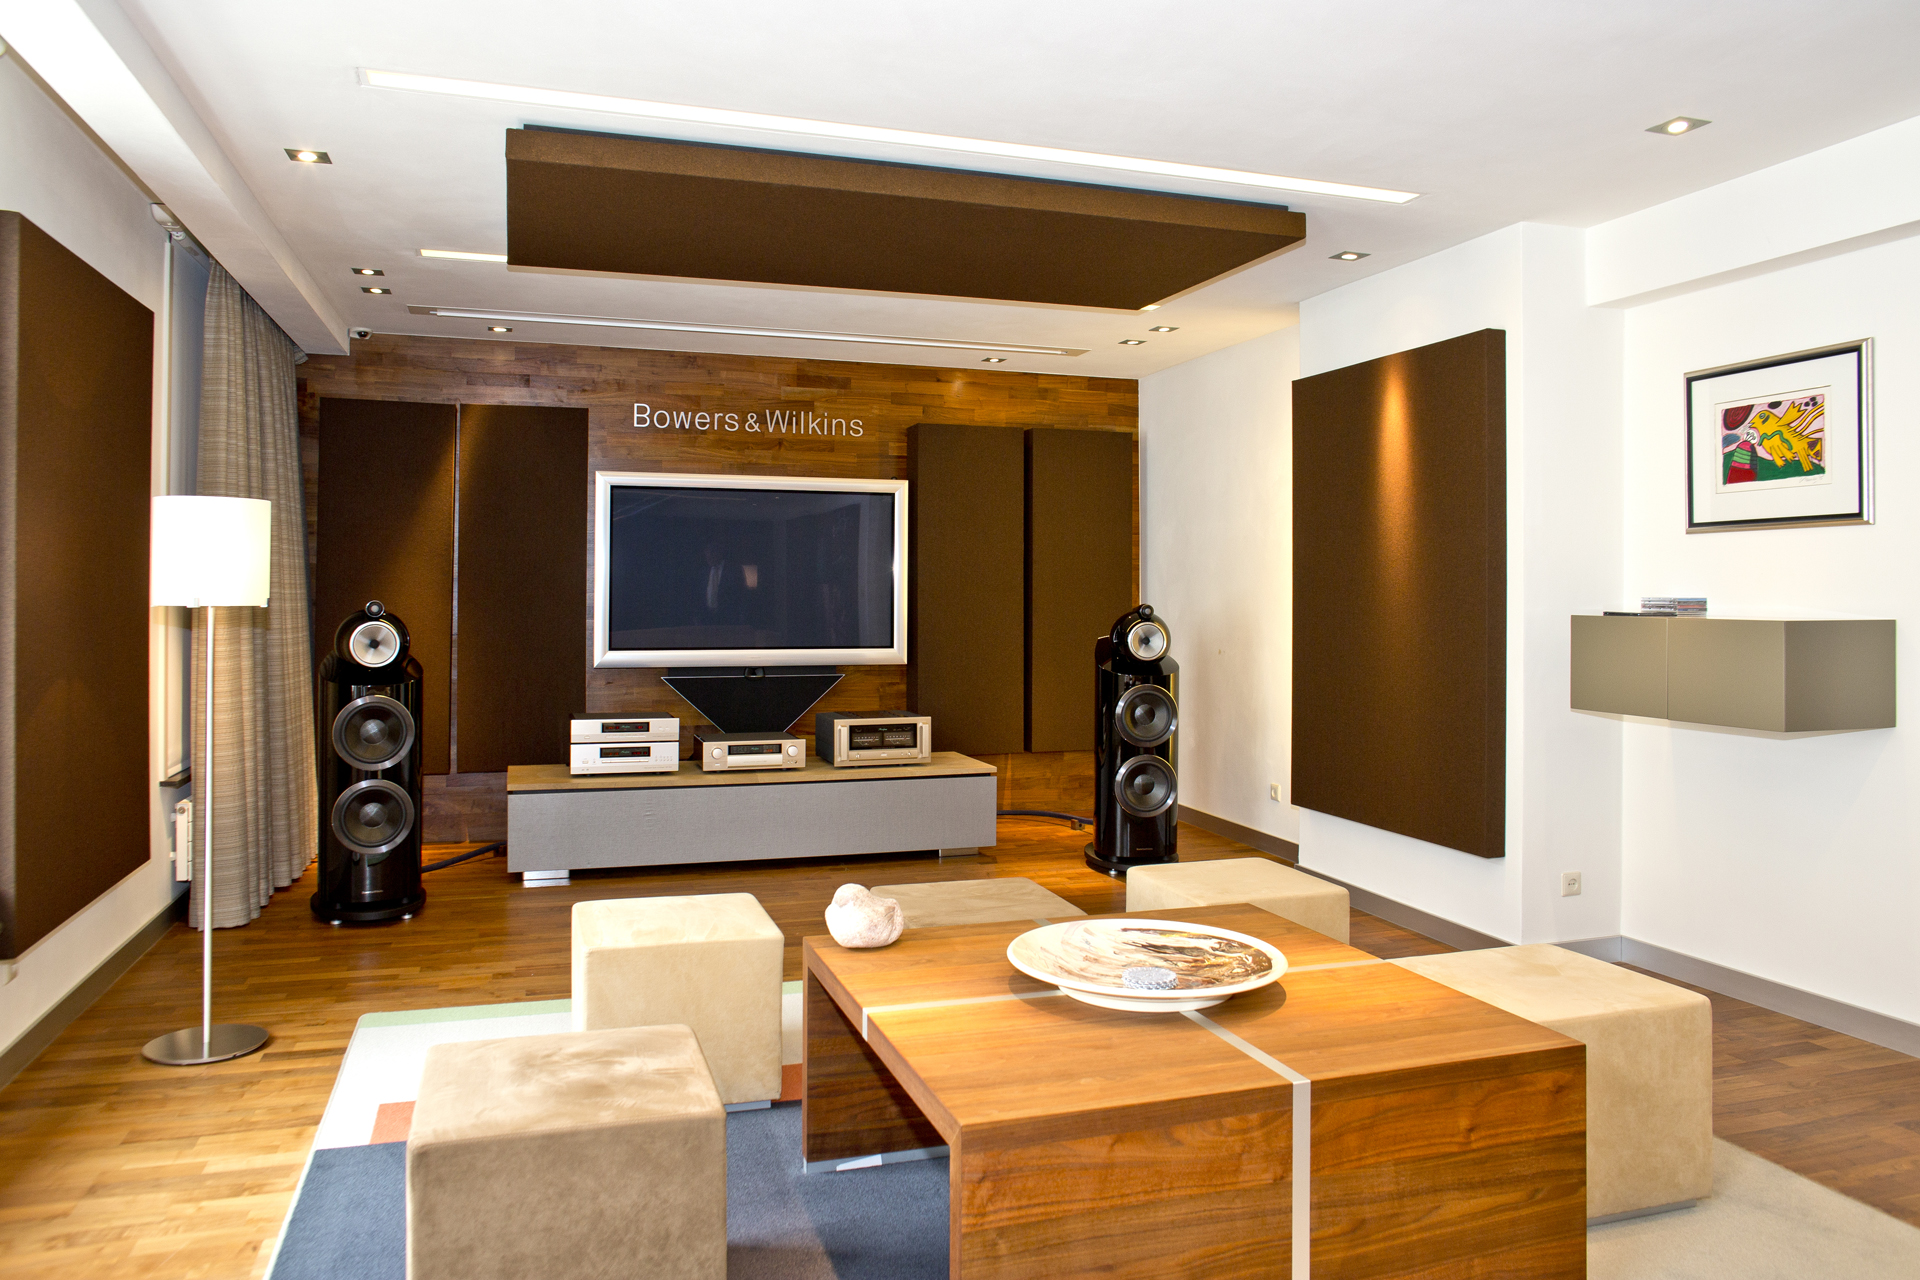 Bowers & Wilkins 800 Diamond room bij Poulissen in Roermond